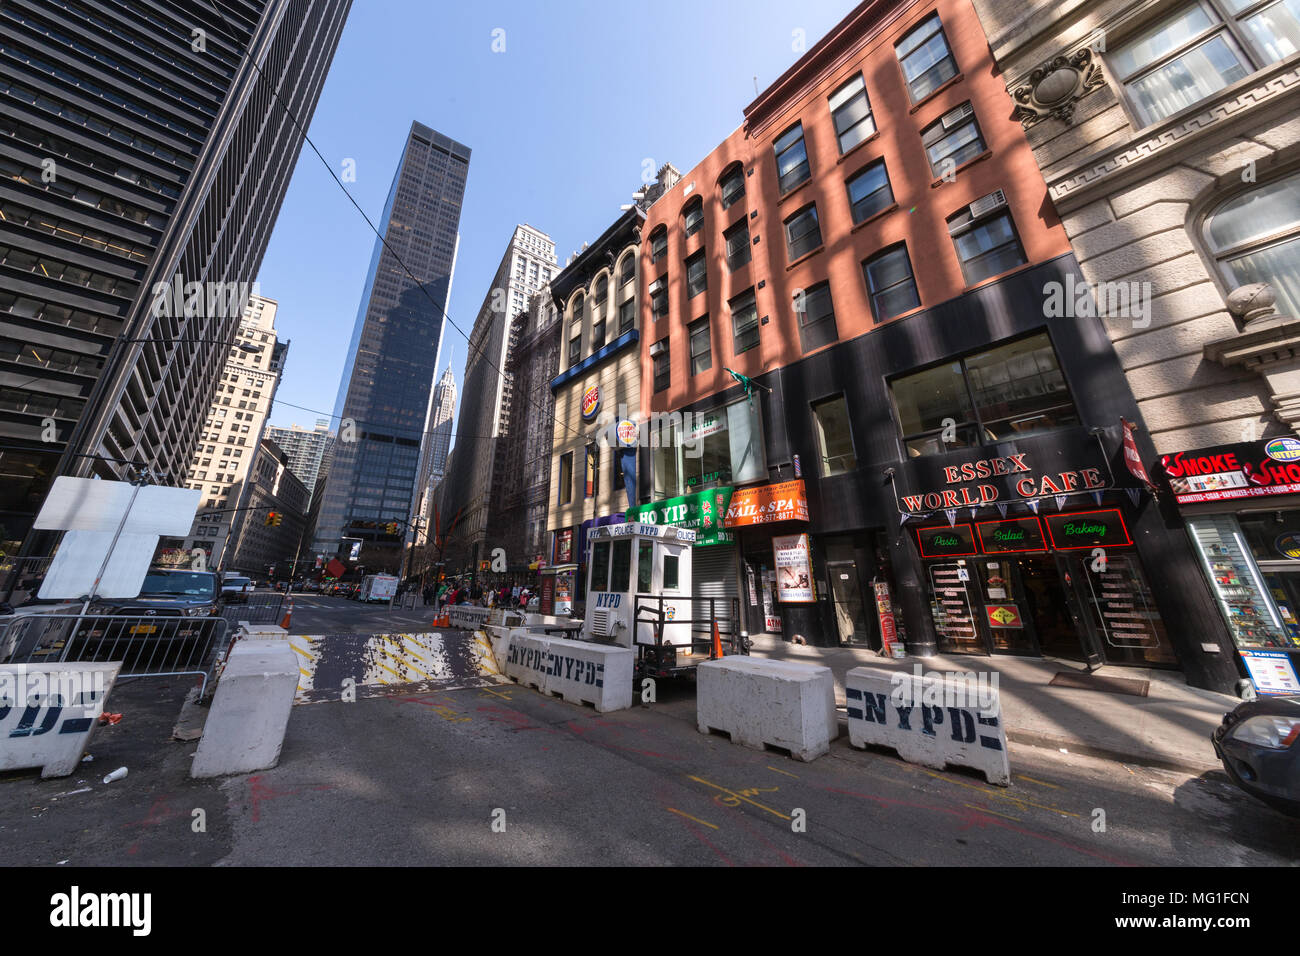 NYPD konkrete Hindernisse in Lower Manhattan. Stockbild